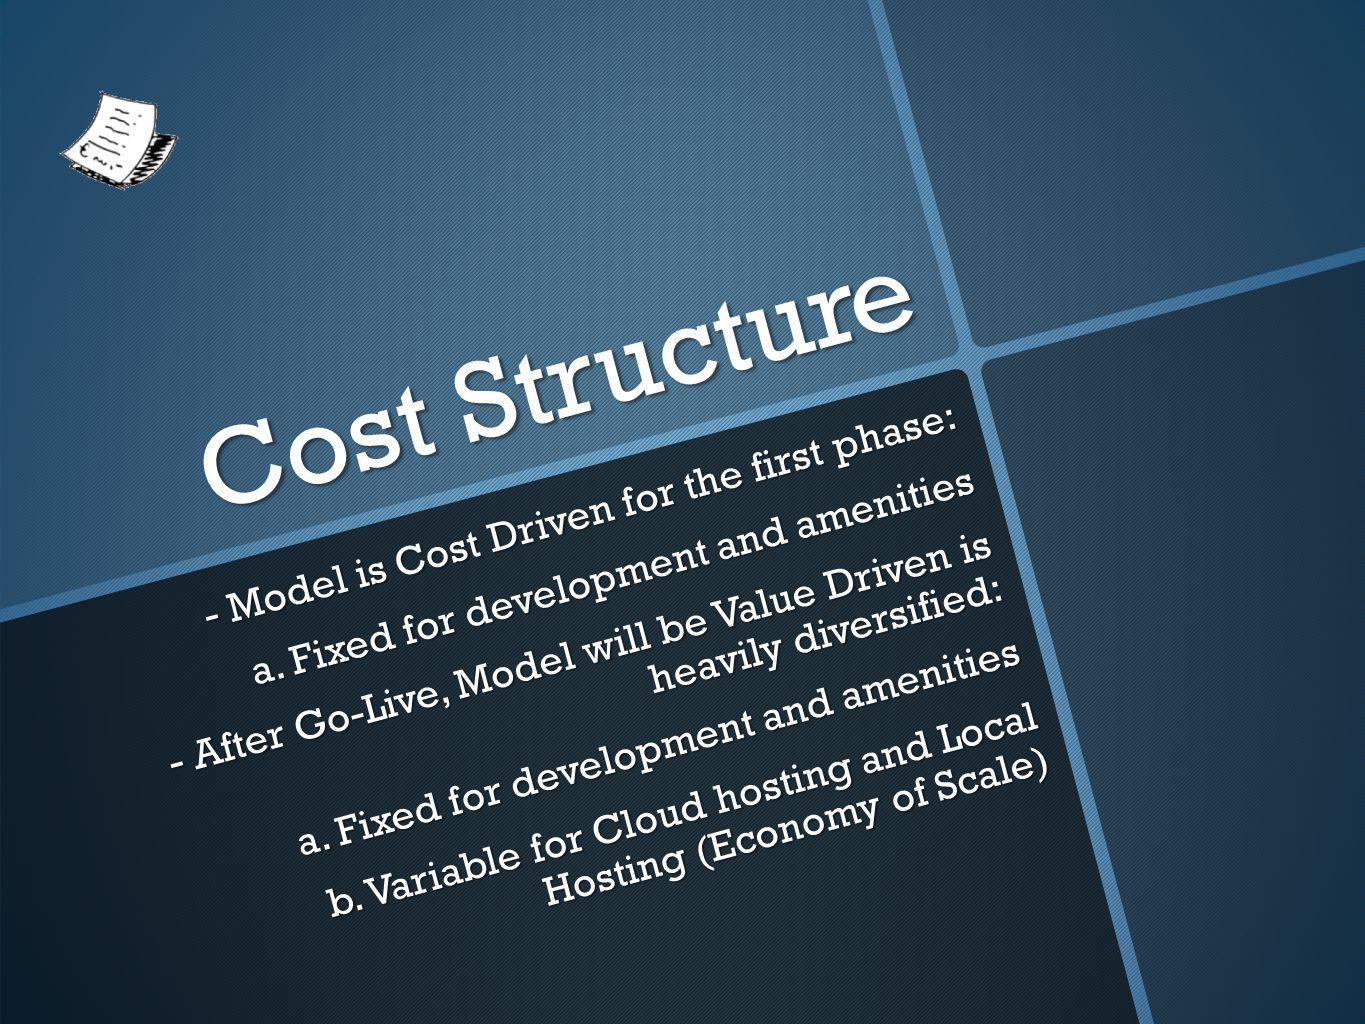 Cost Structure - Model is Cost Driven for the first phase: a.